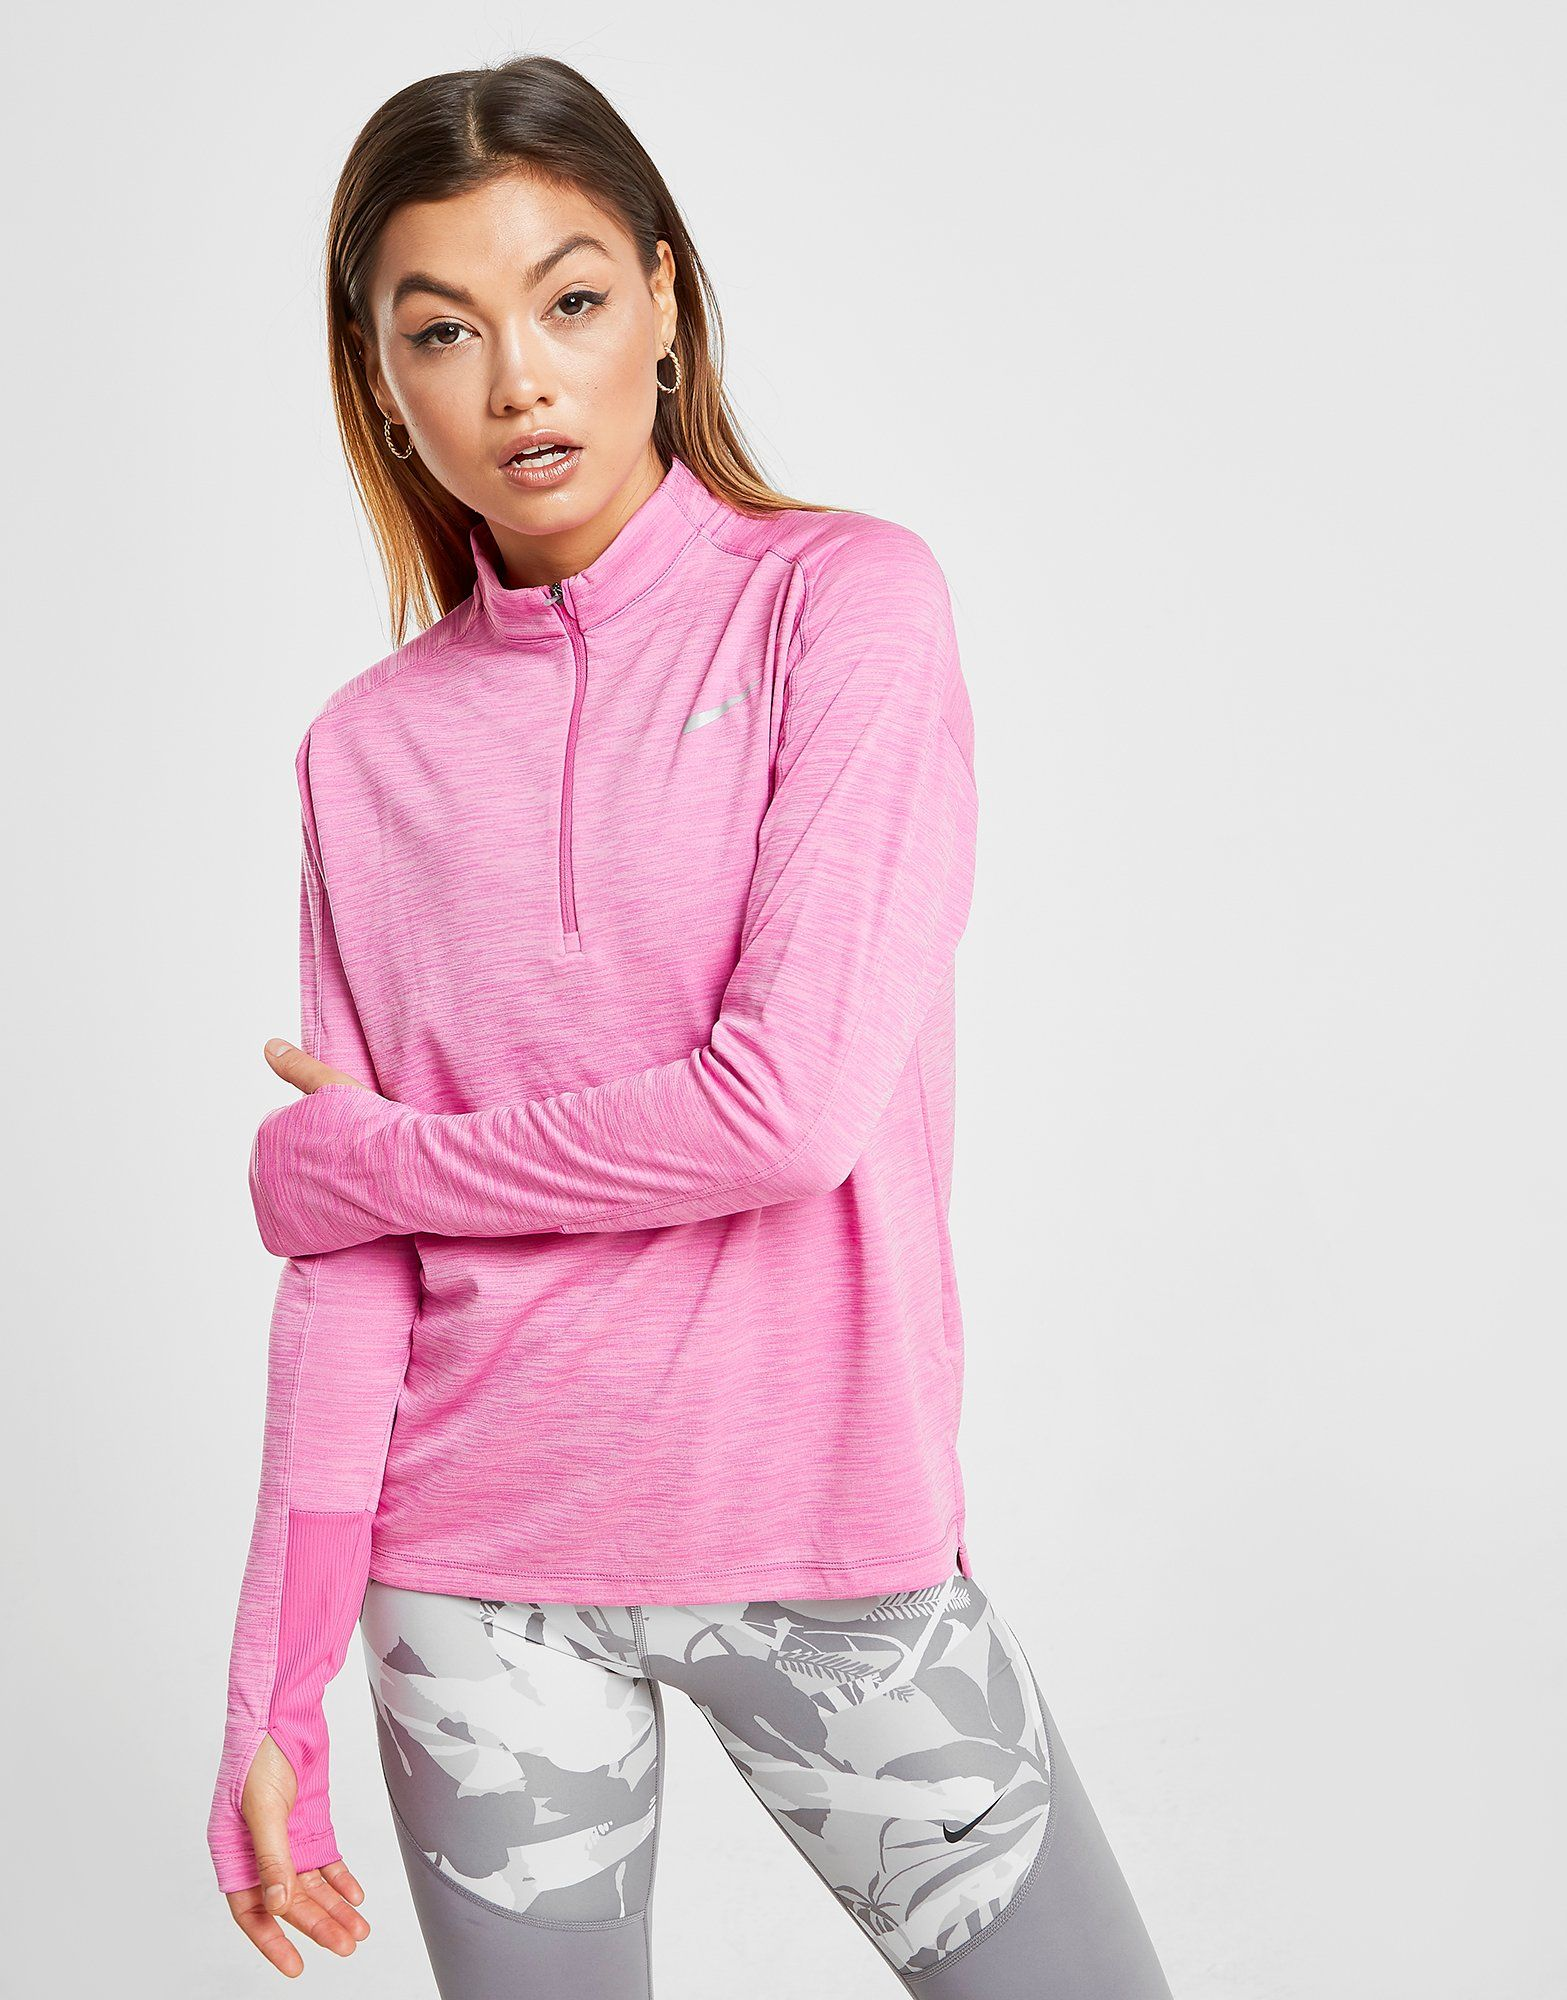 Nike 1 4 Zip Sweatshirt Womens | Coolmine Community School